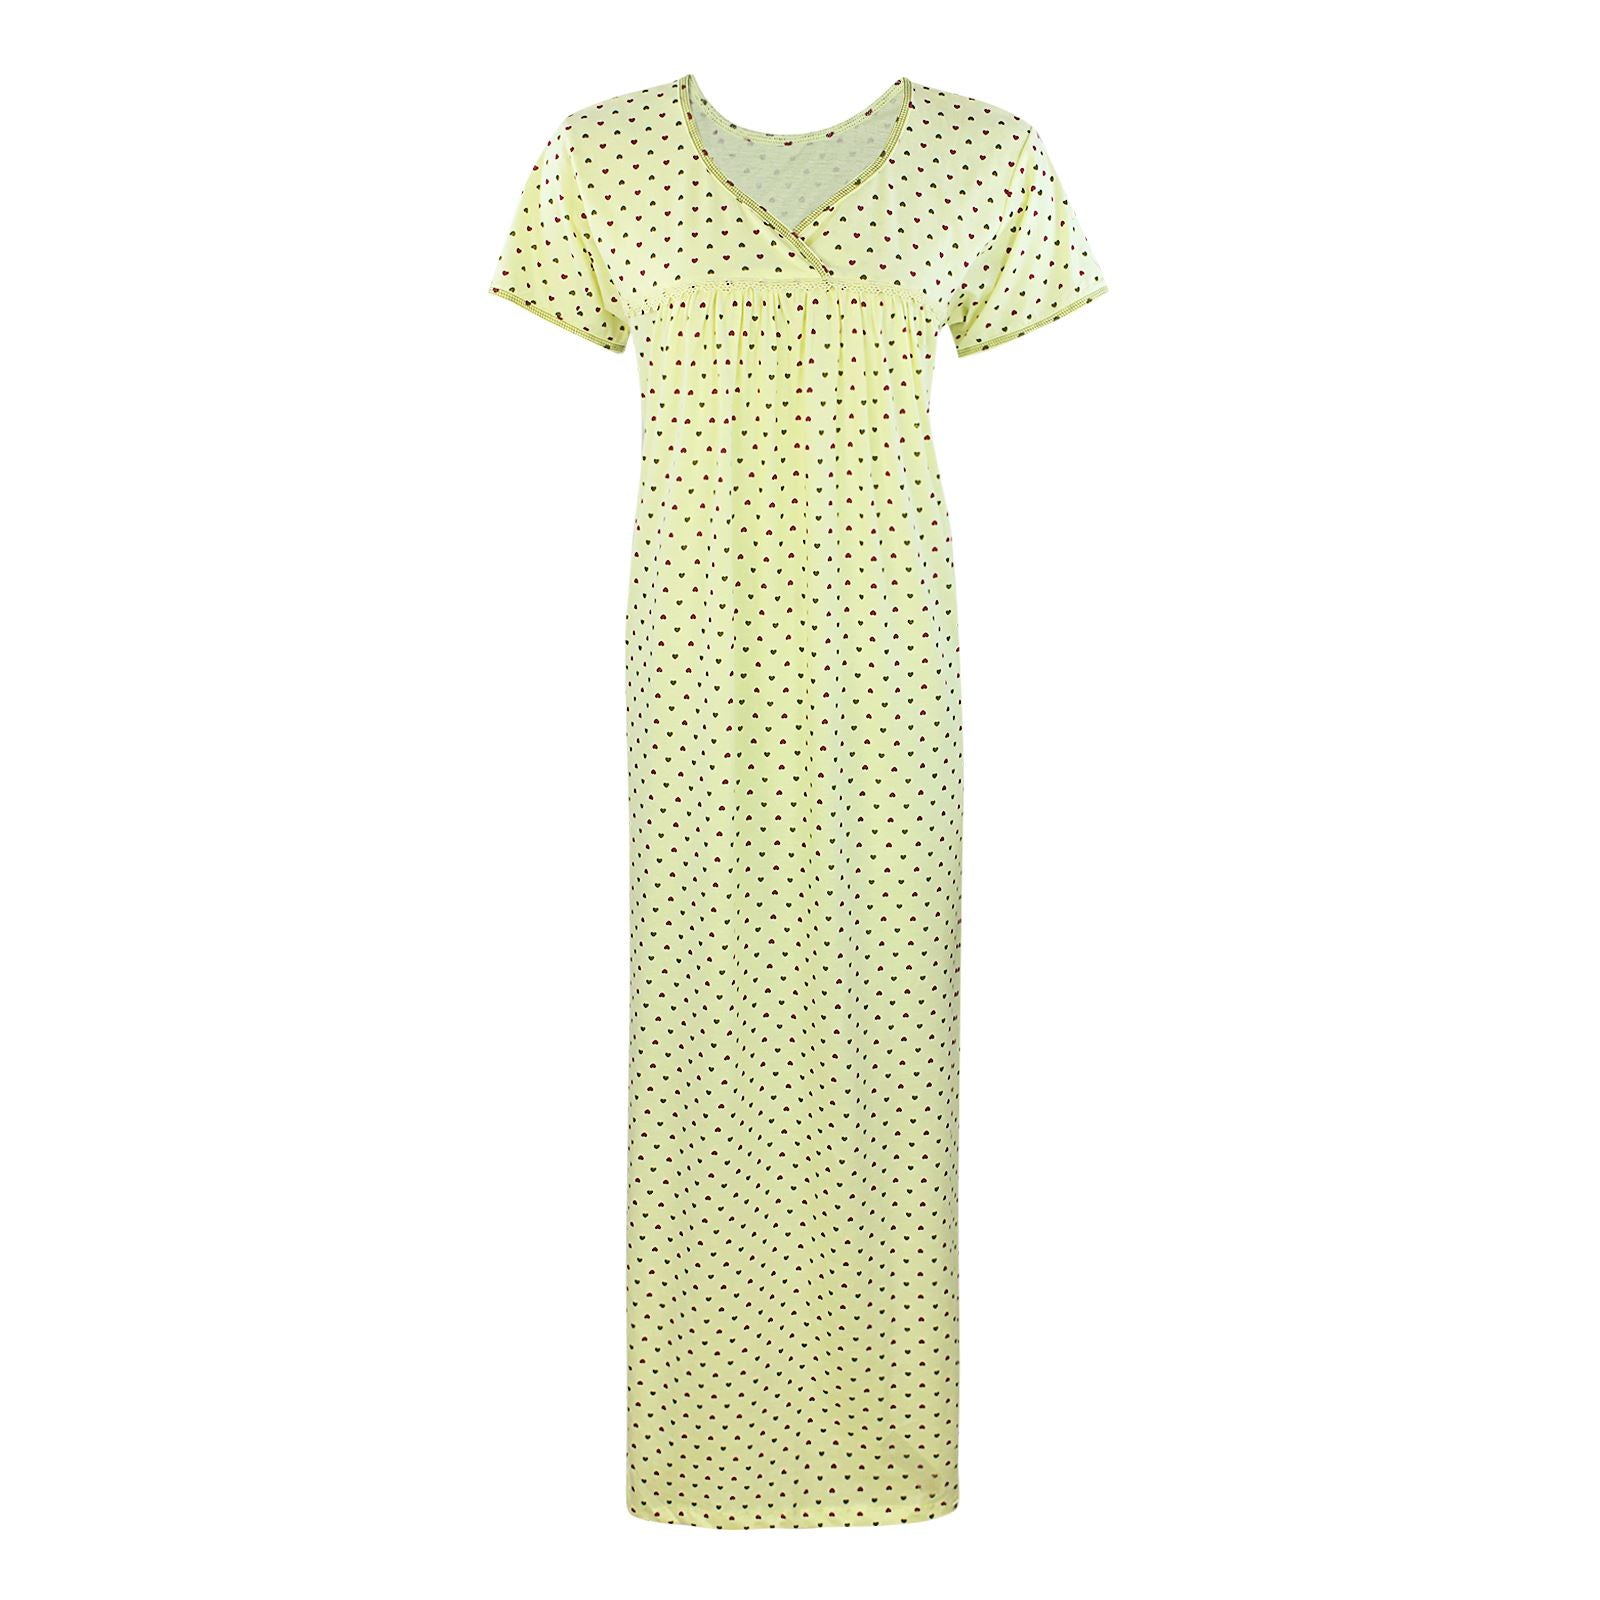 Color: Yellow 100% Cotton Heart Print Long Nightie Size: One Size